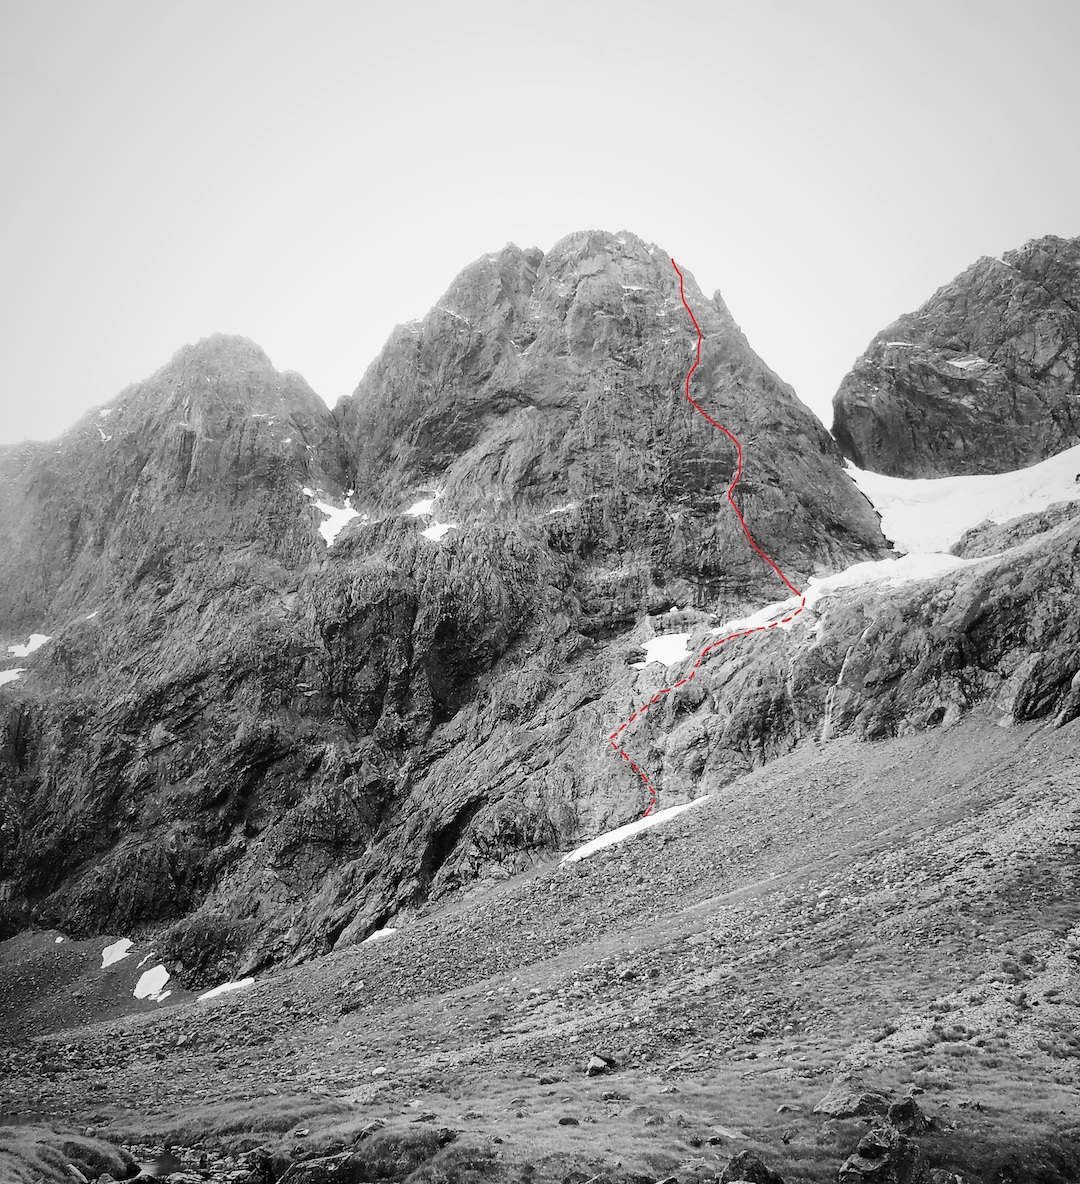 The line of Everlasting Light (600m, V, 6, (18/10a), the first solo ascent of the south face of Mt. Sabre.